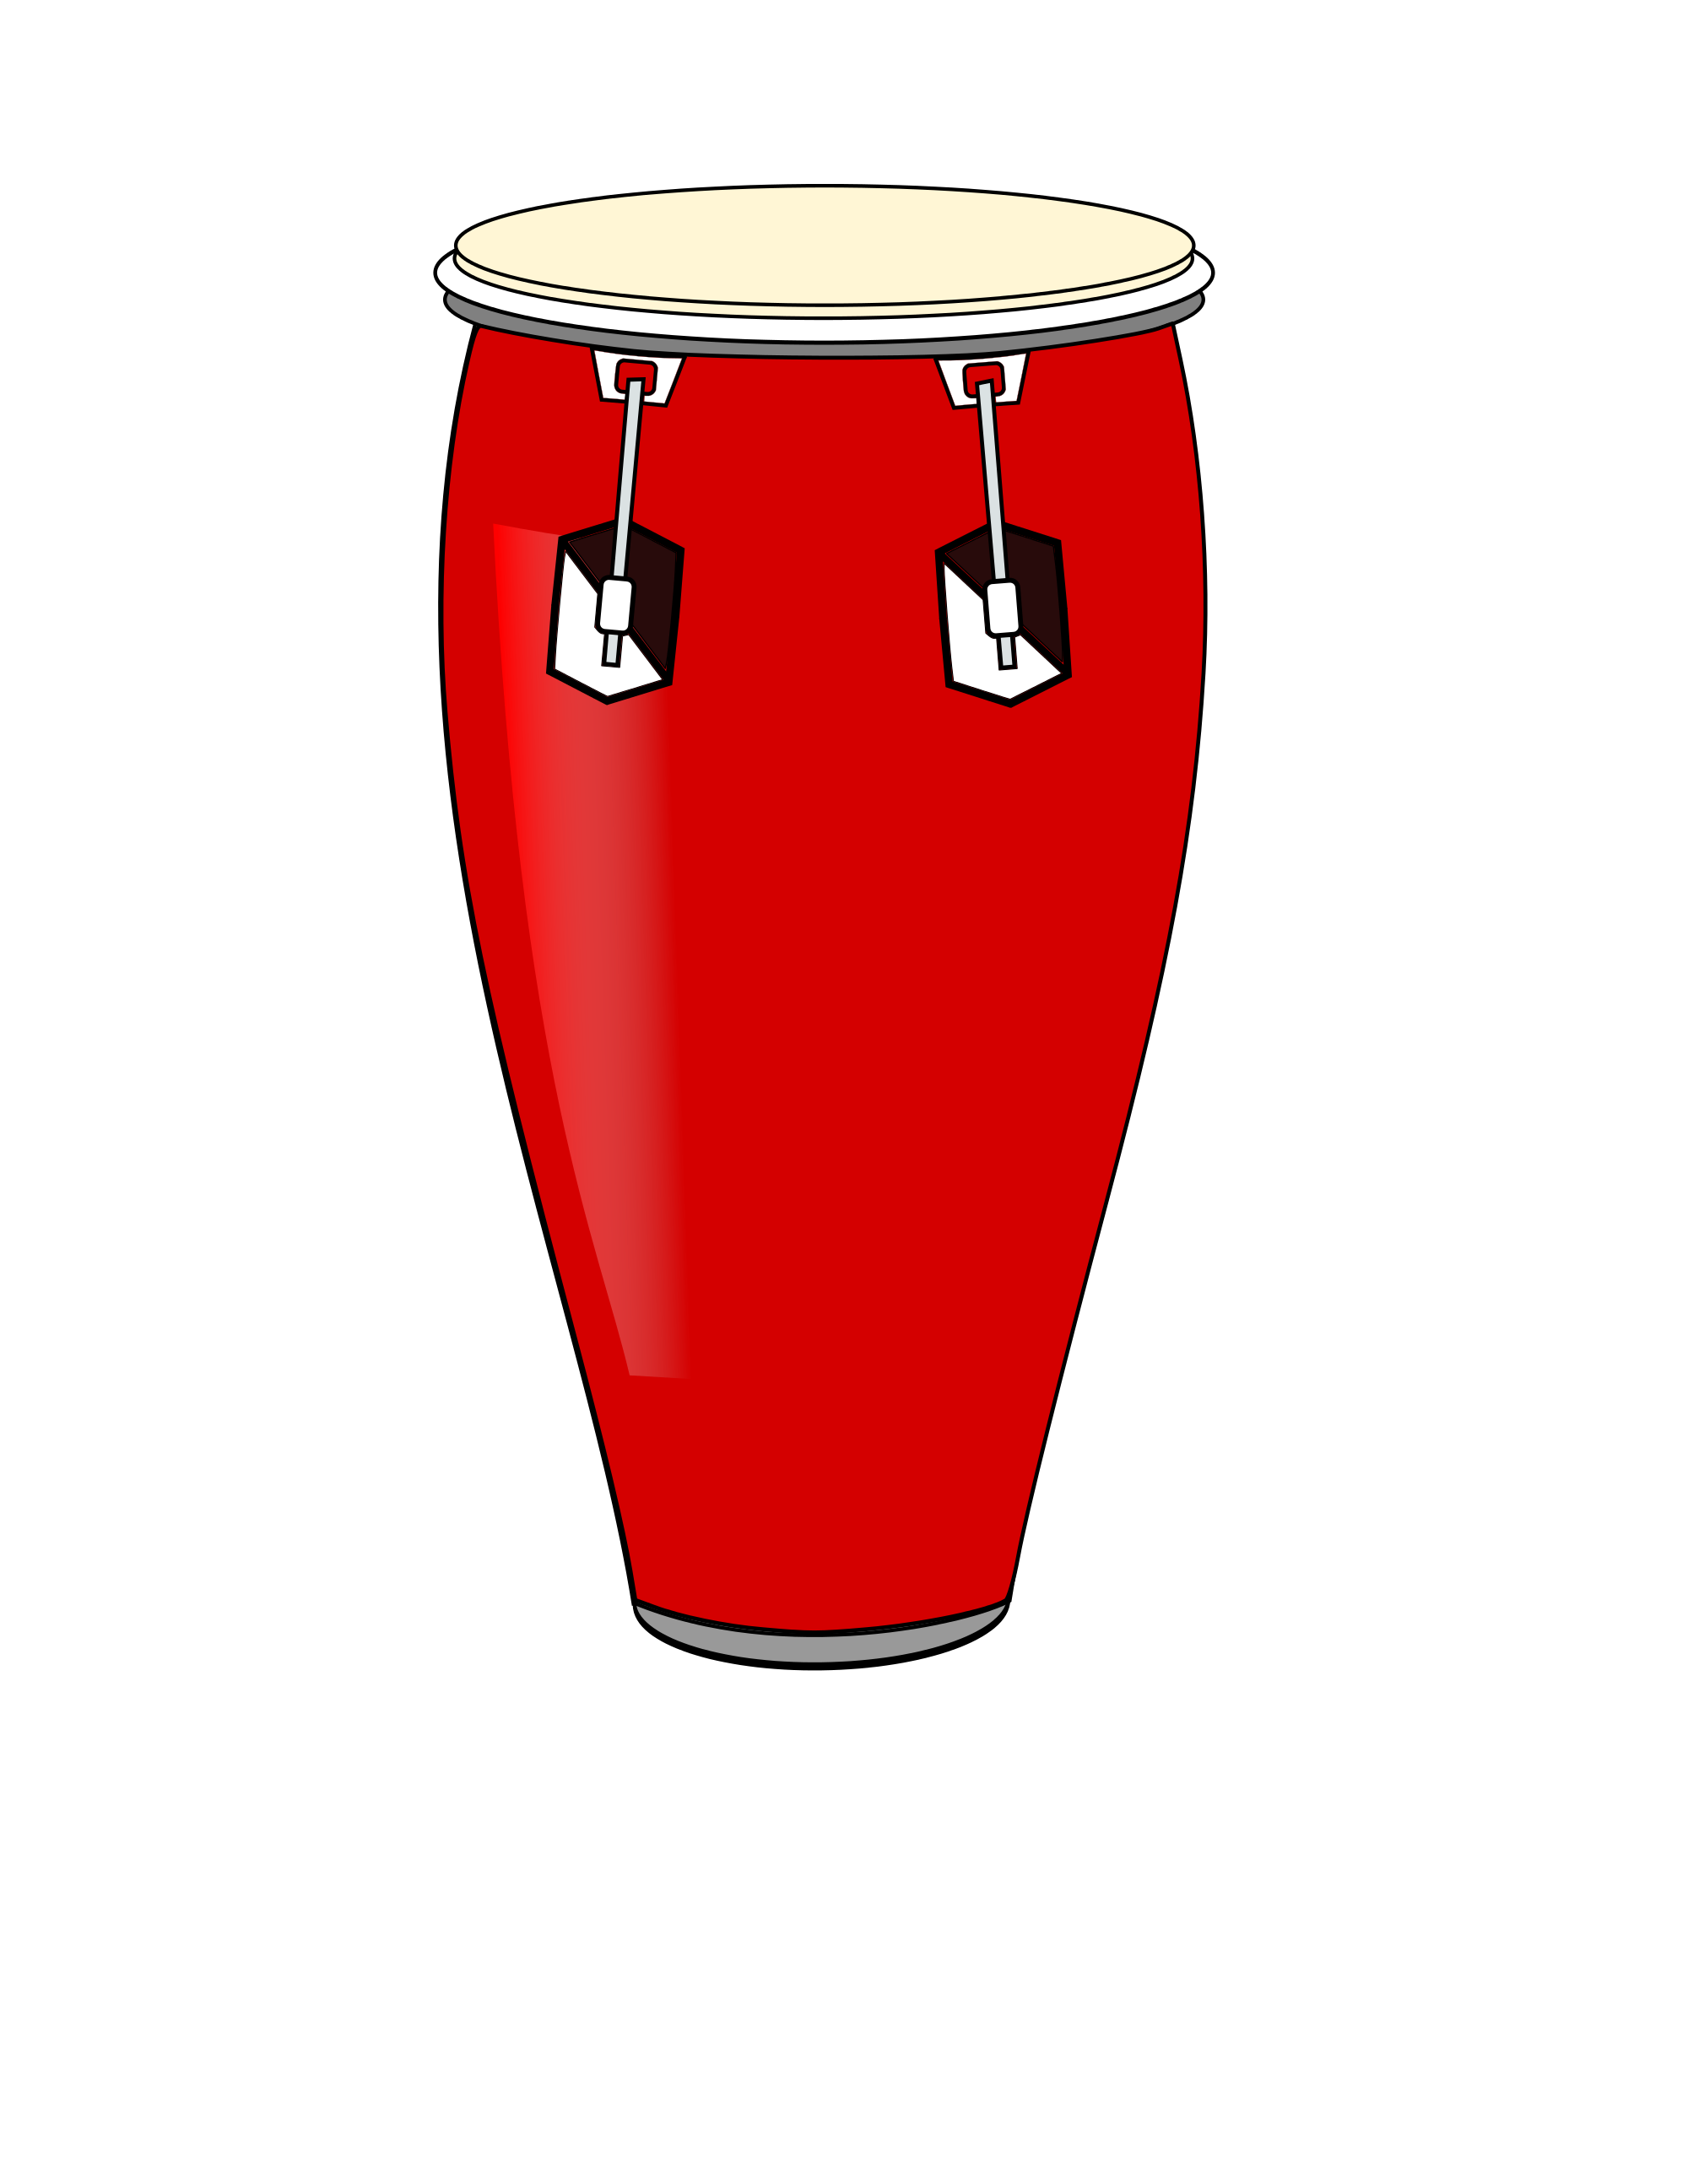 drums clipart conga